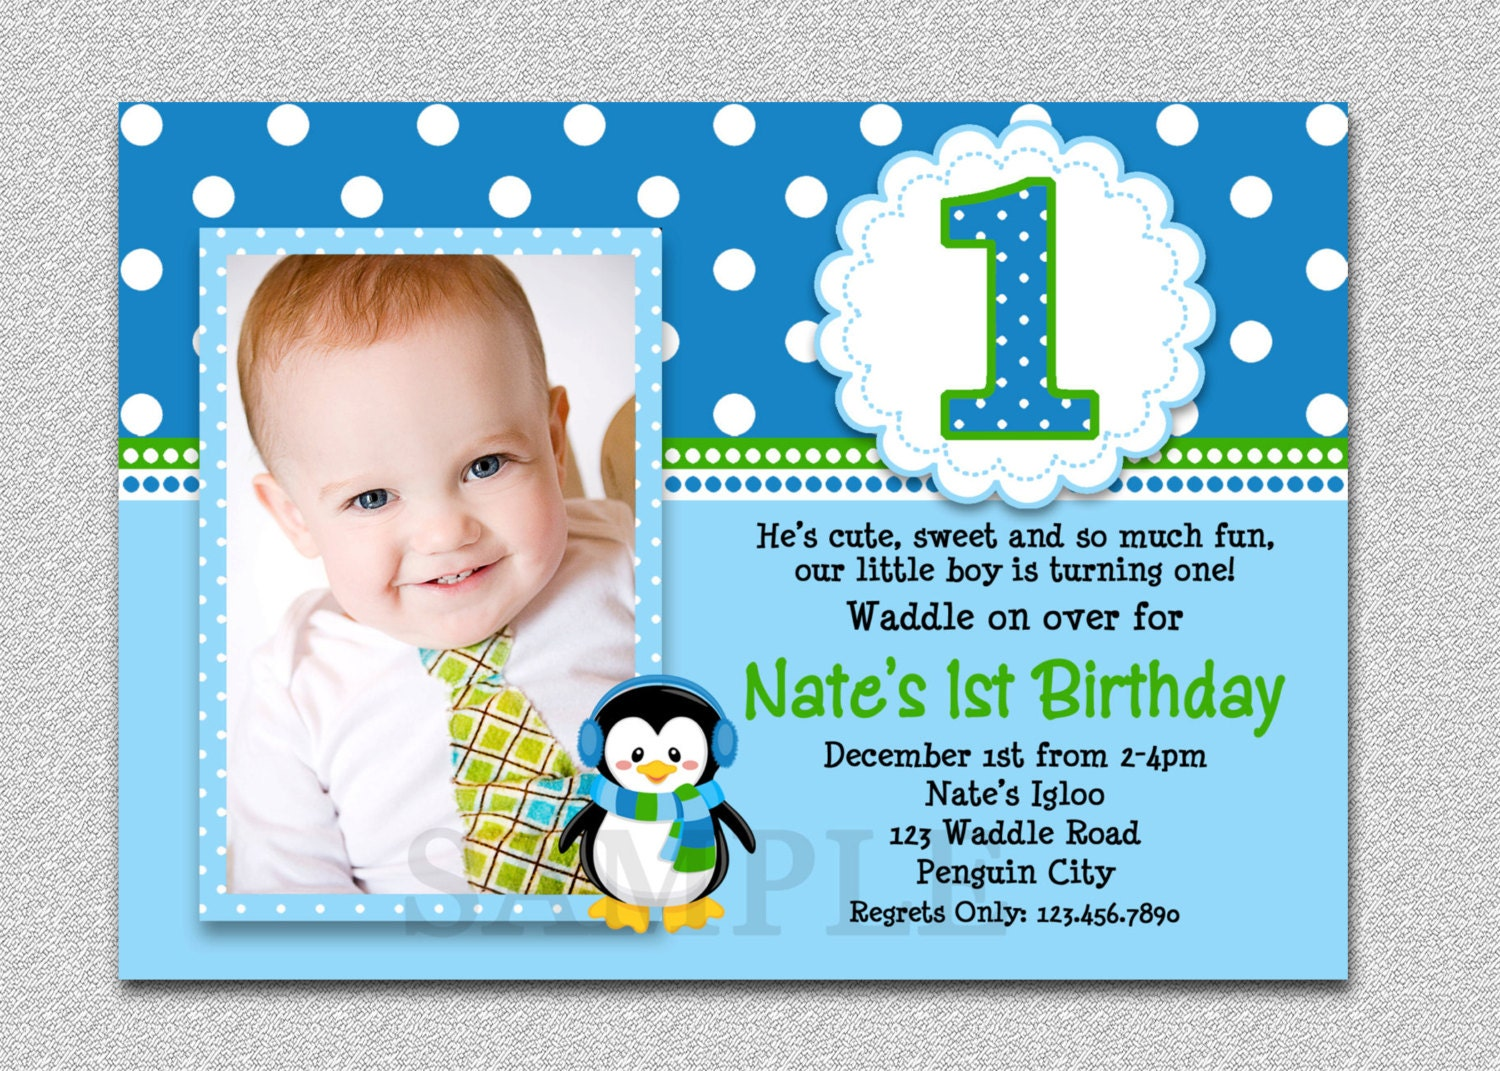 1st birthday party invitations for boys acurnamedia 1st birthday party invitations for boys filmwisefo